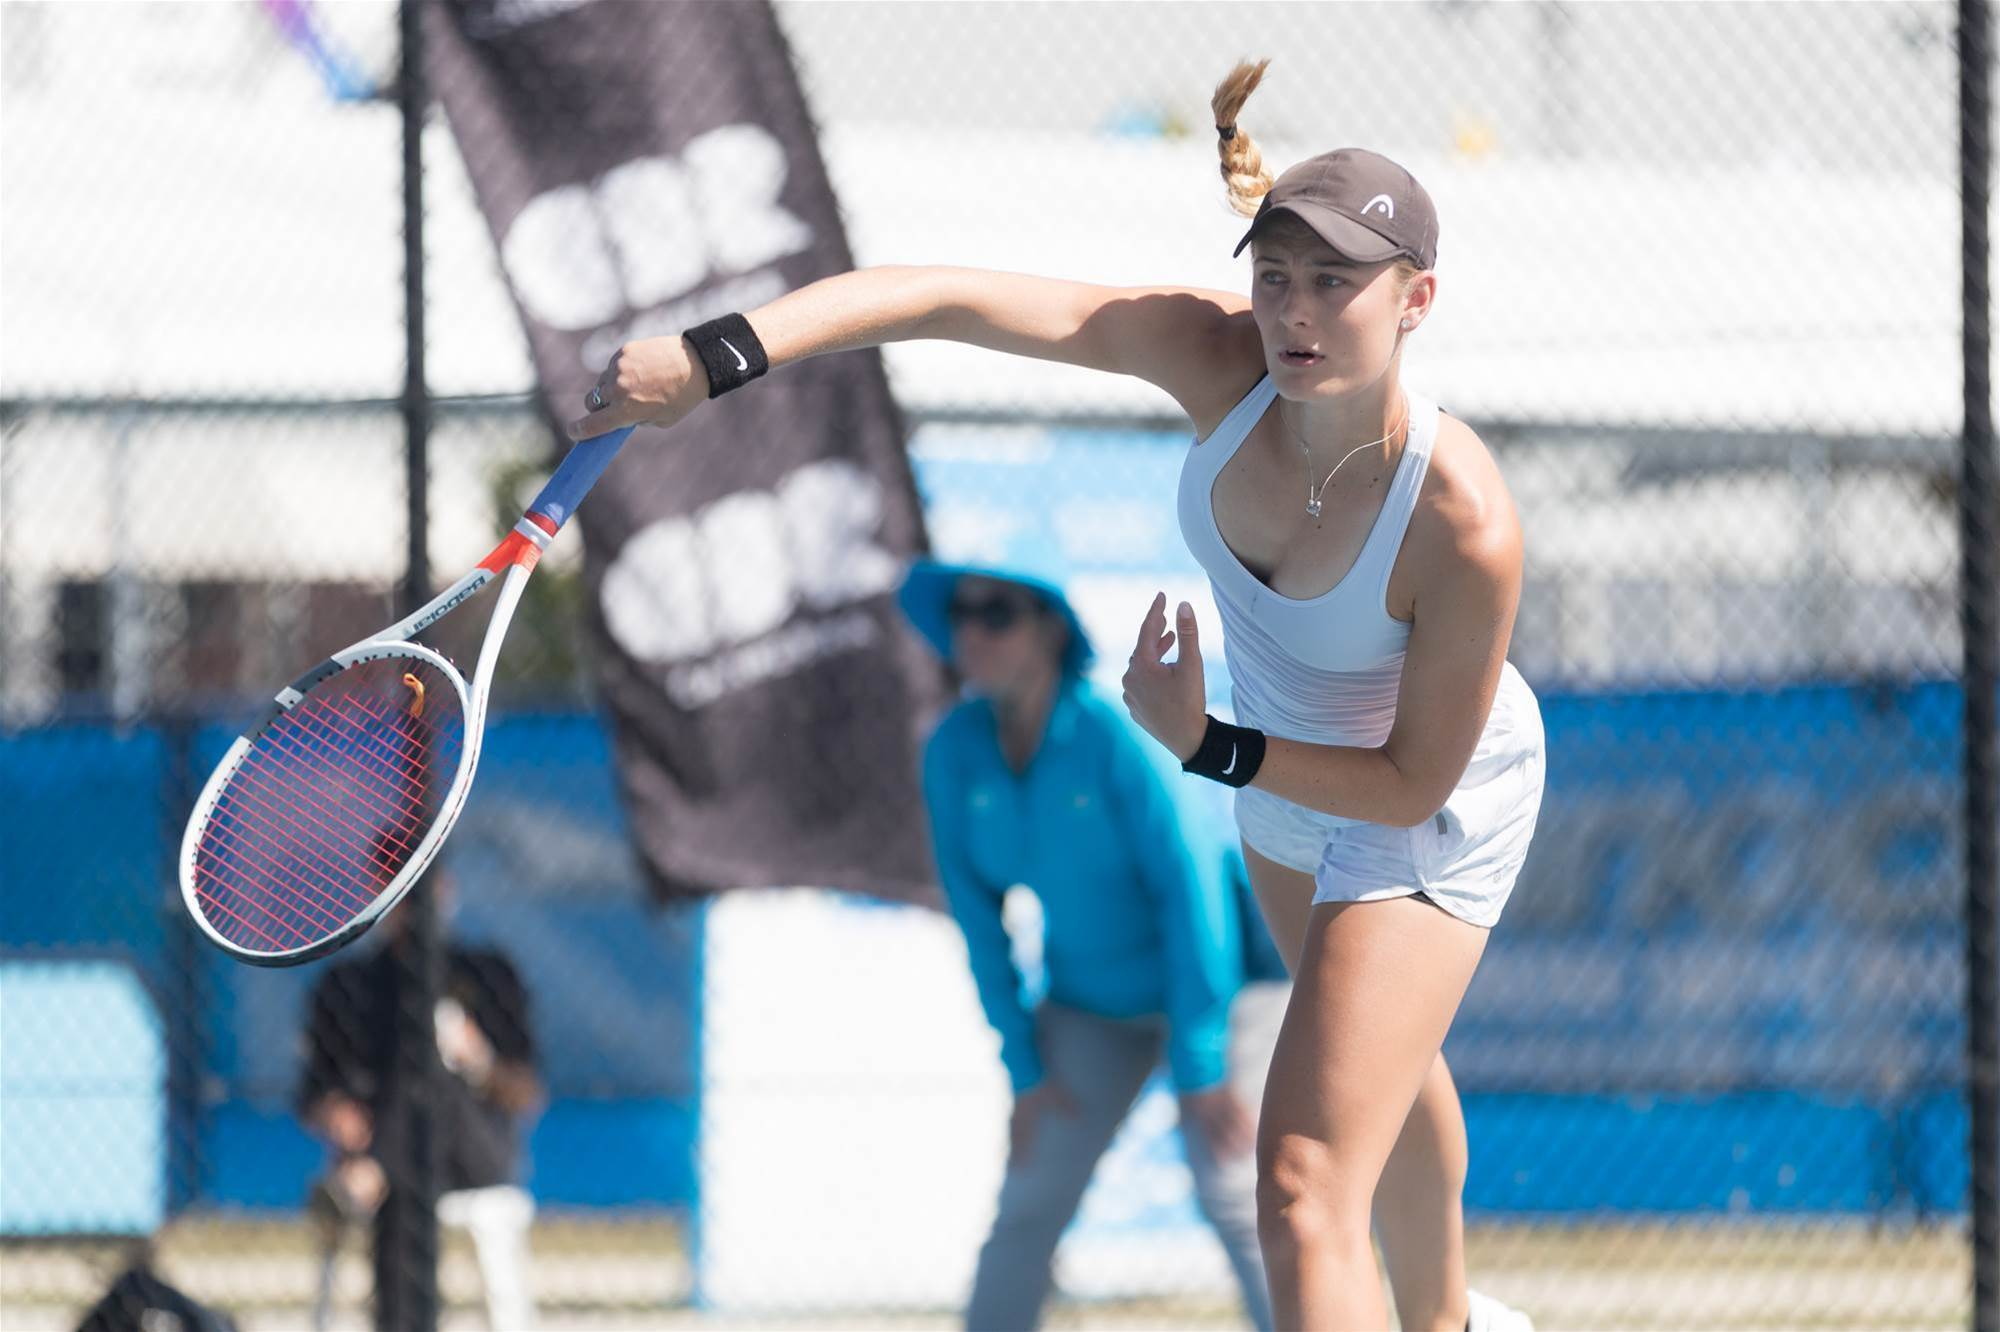 Pic special: Apis Canberra International - ITF Women's